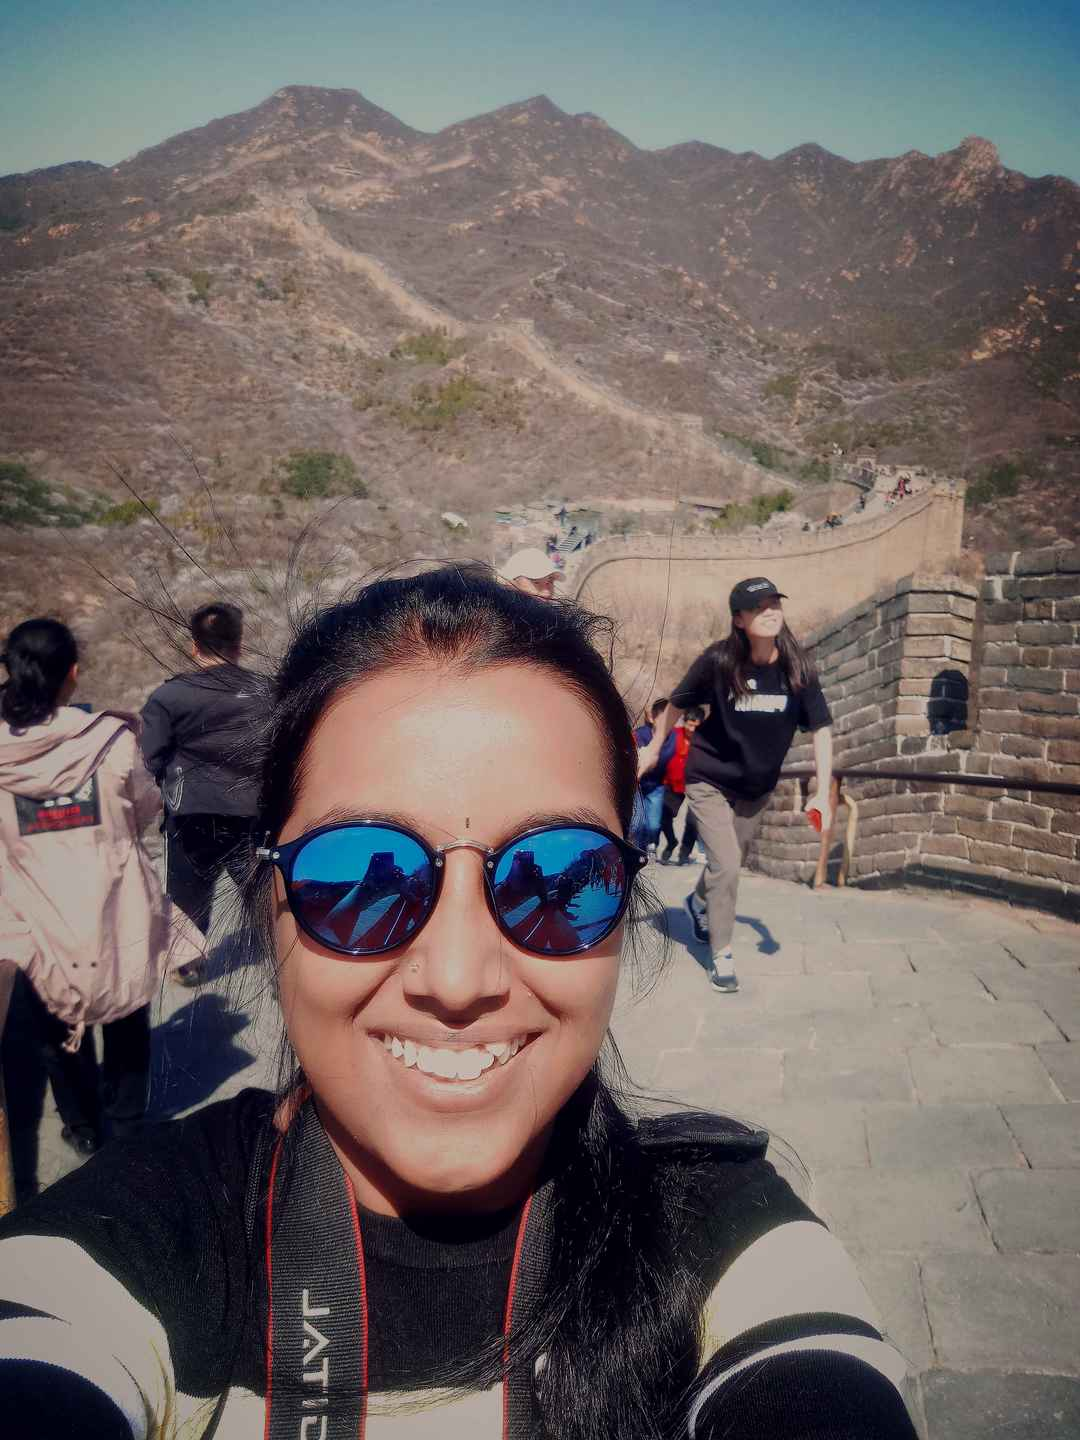 A great hike up the great wall!  #SelfieWithAView #TripotoCommunity